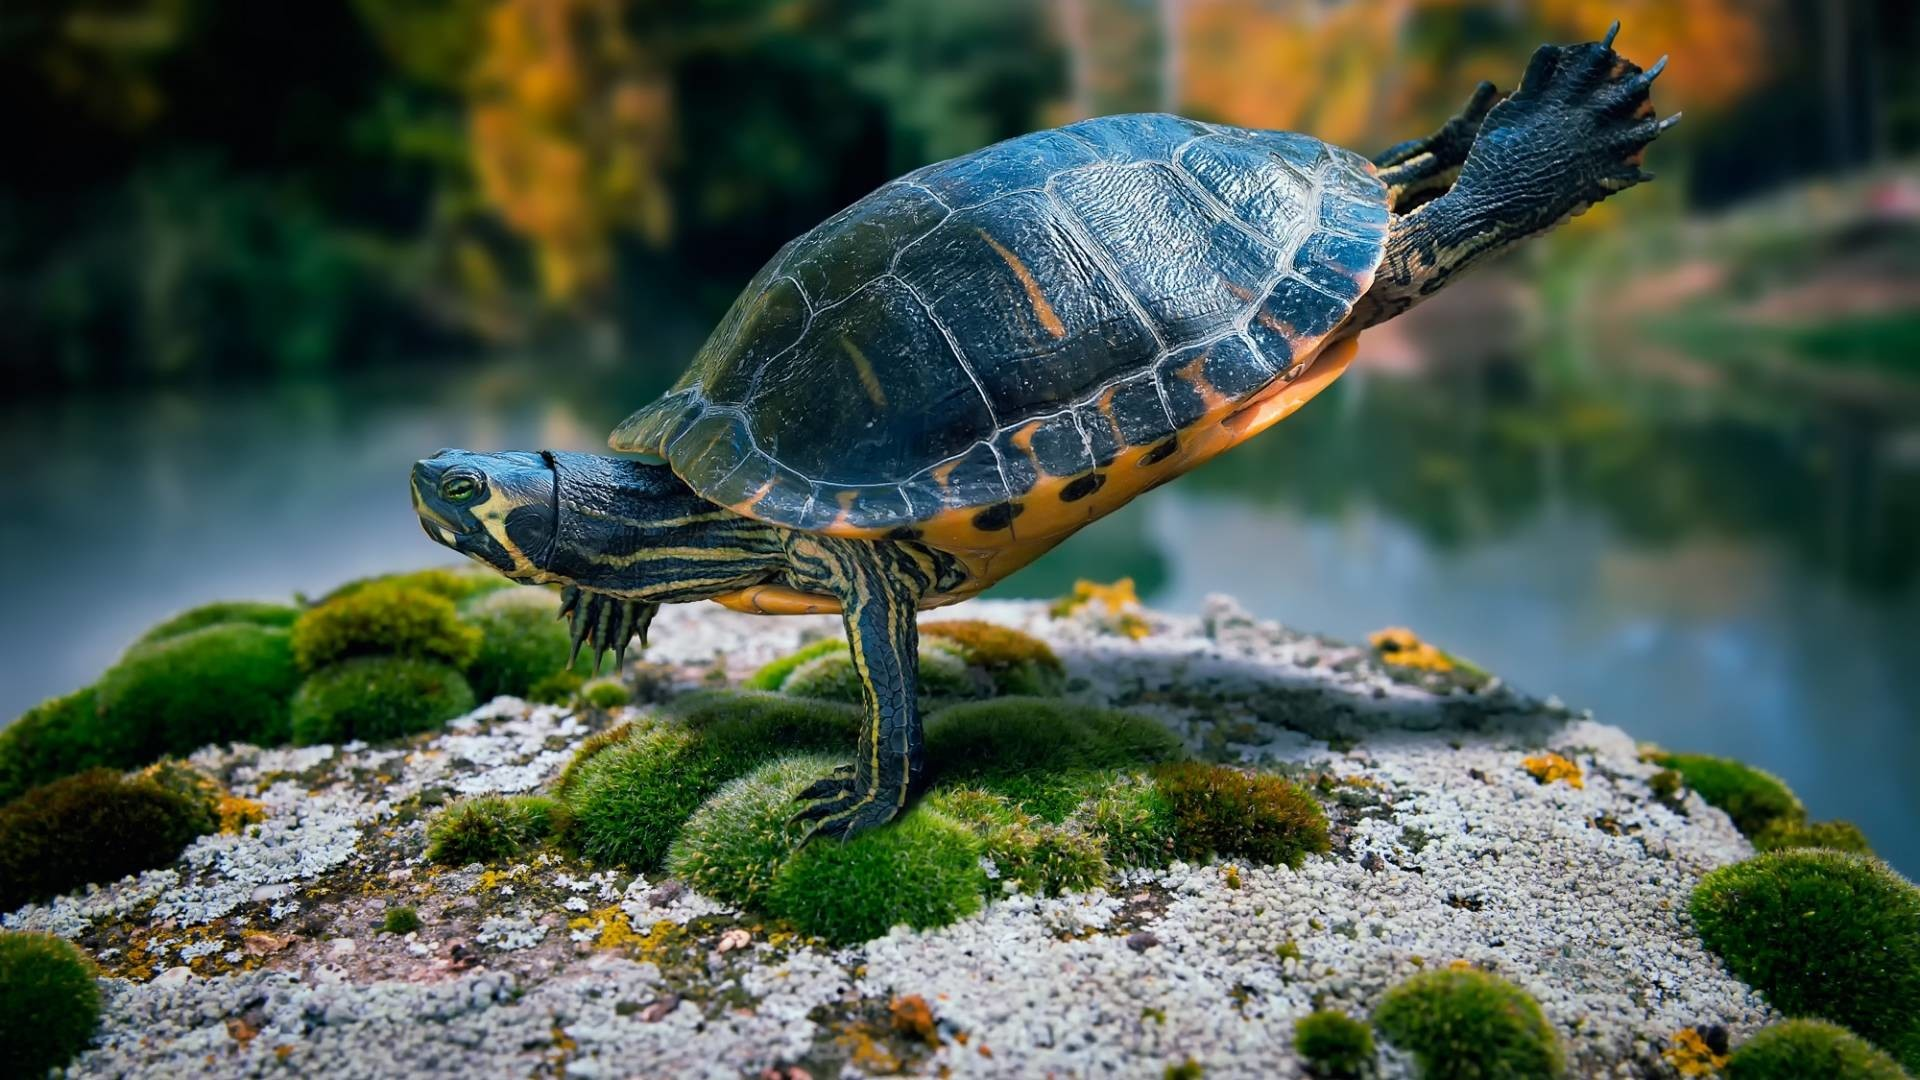 … turtle wallpapers hd download …